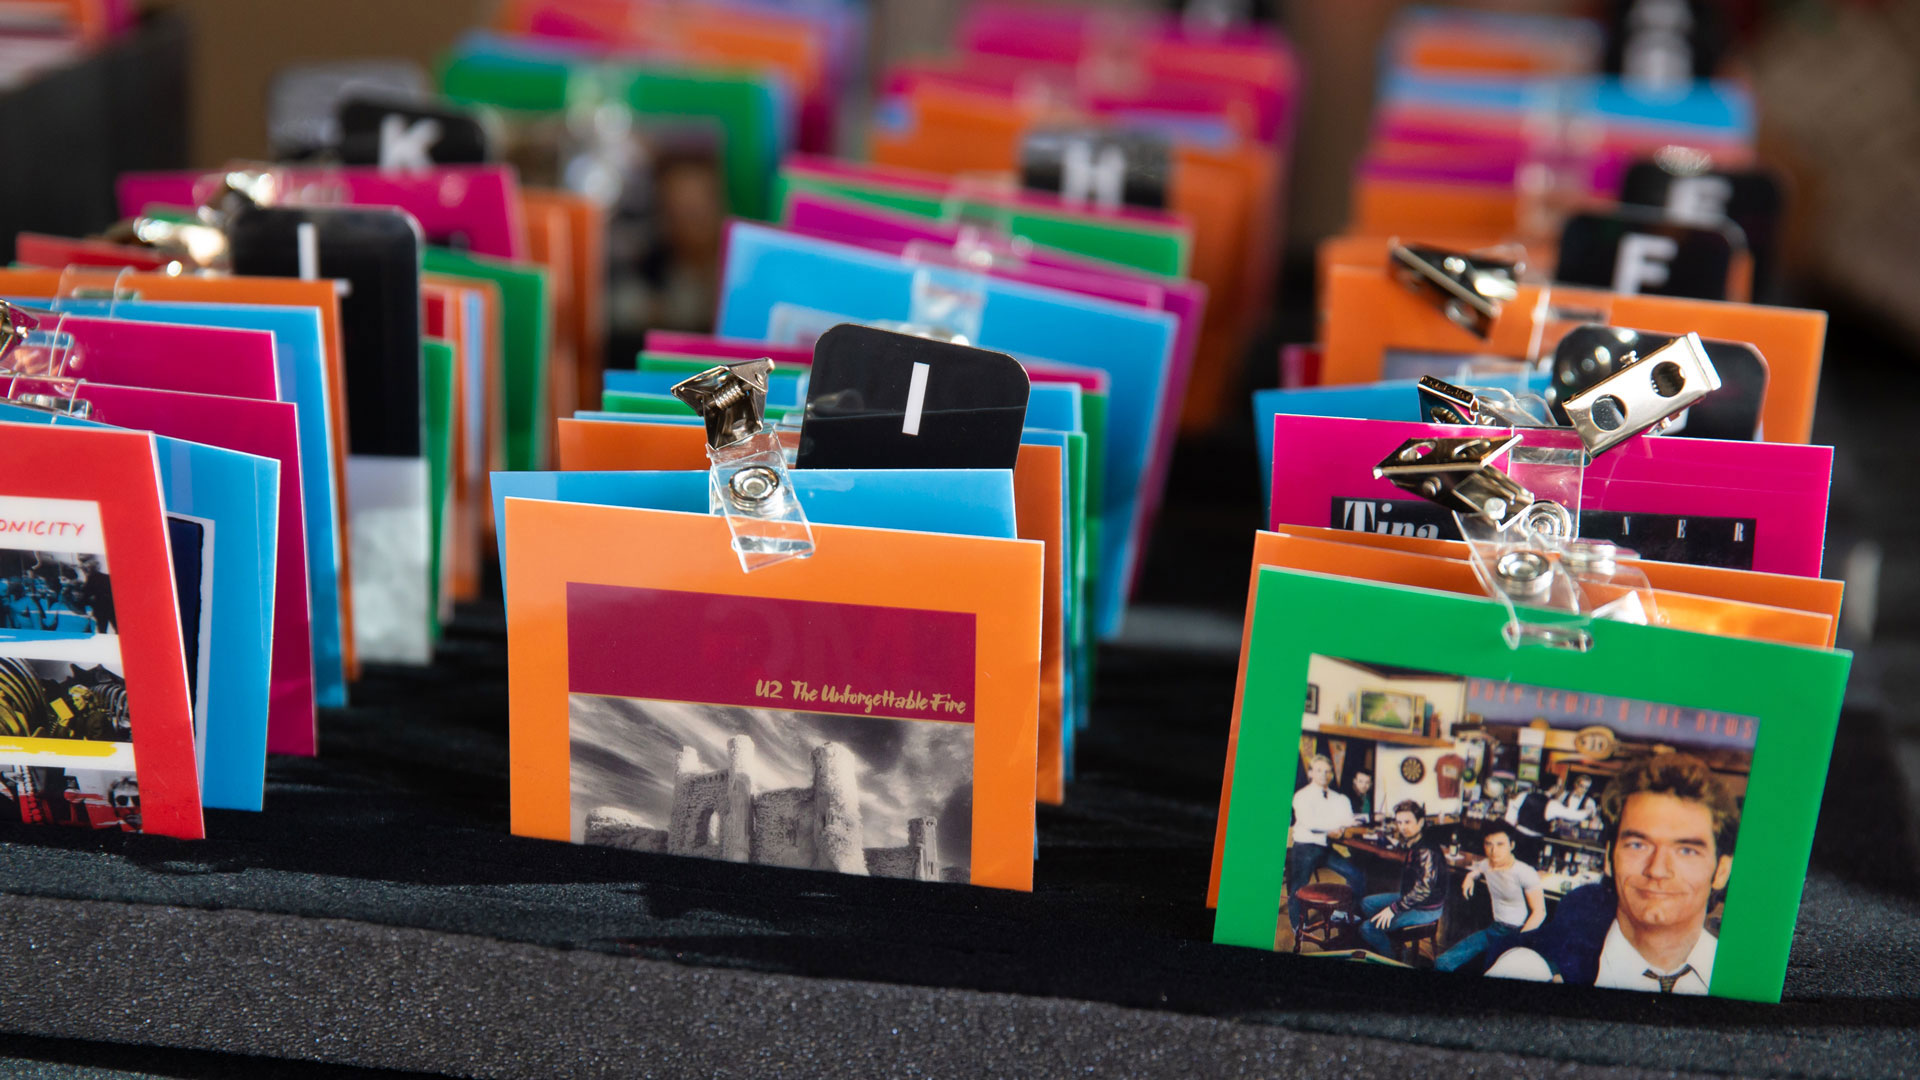 Reverse angle of name tags showing colorful back panels with 1980s album cover artwork